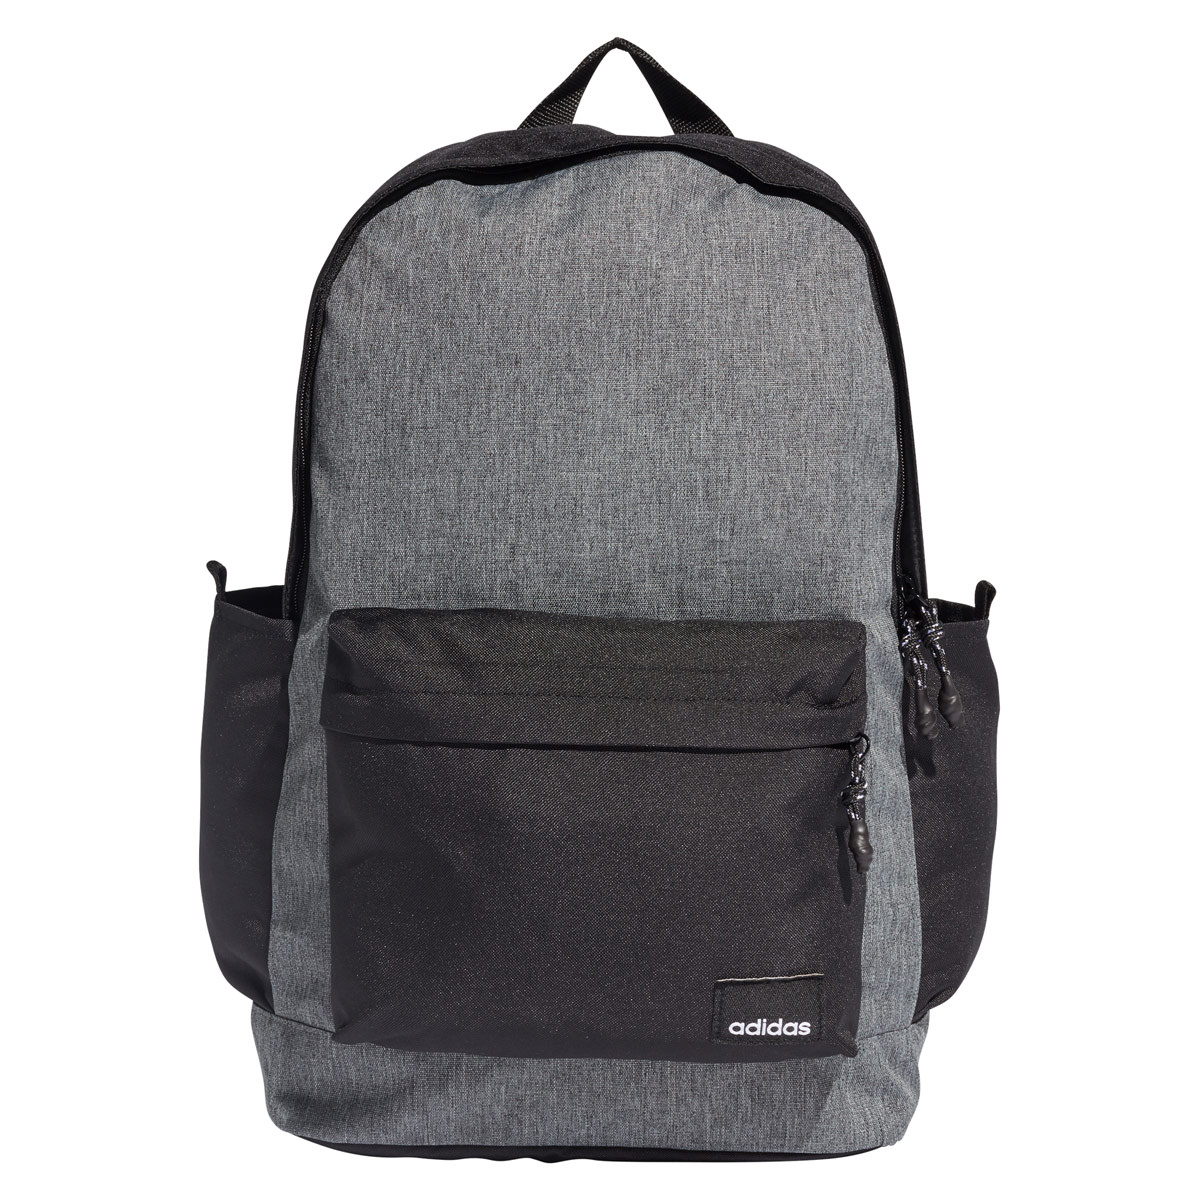 Xl 21run Adidas Backpack Daily Gris Para Hombre Mochilas R88O5xq6w